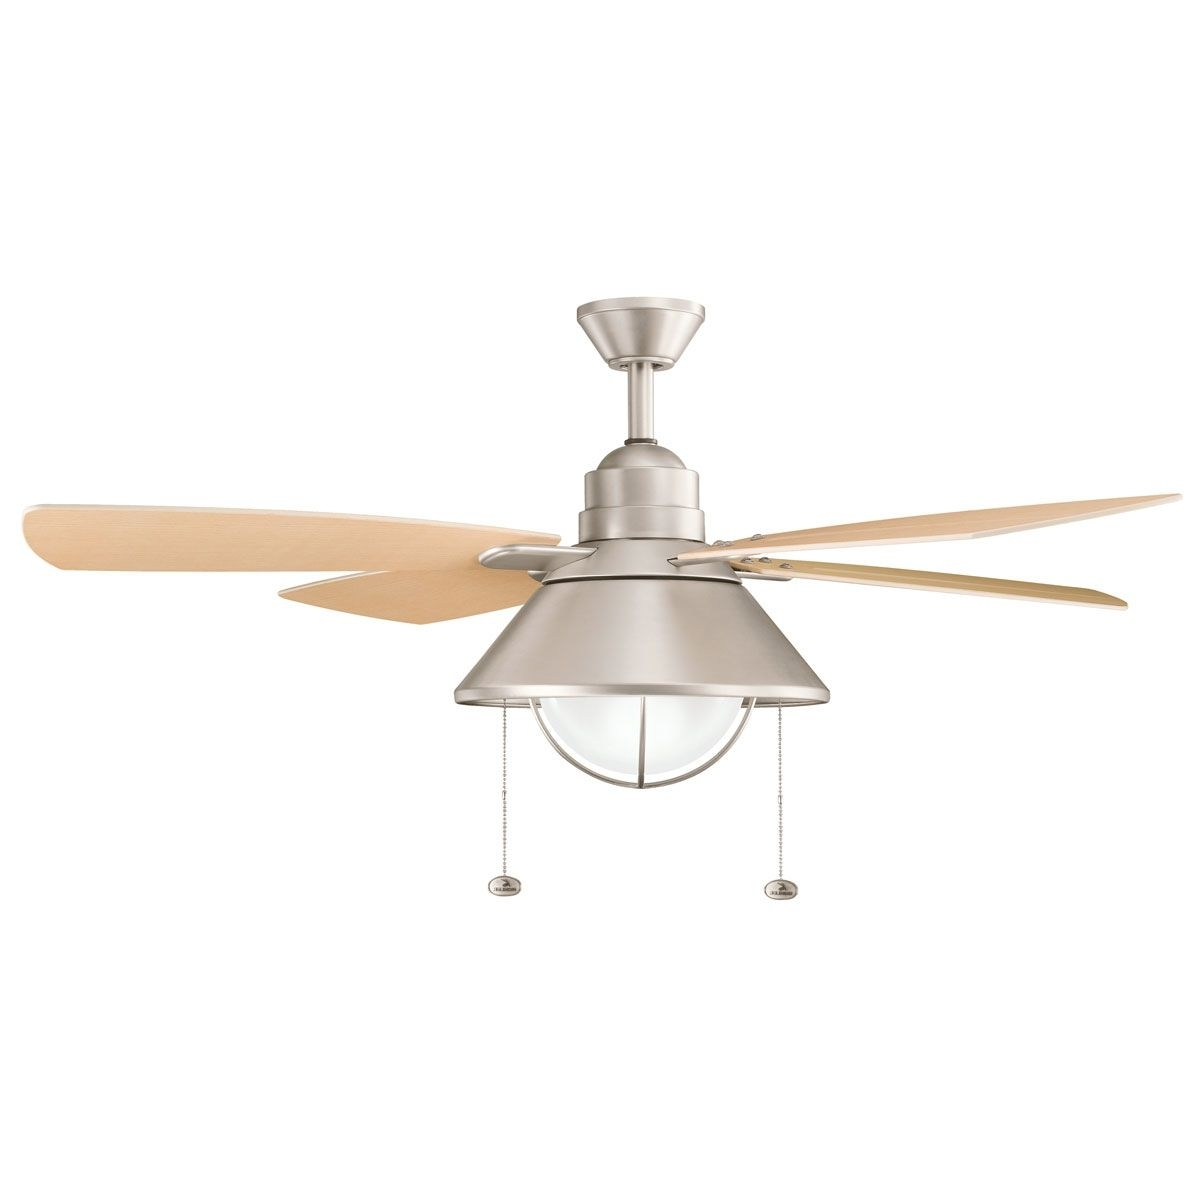 Brushed Nickel Outdoor Ceiling Fans With Latest Kichler Fans Seaside Ceiling Fan In Brushed Nickel (Gallery 16 of 20)